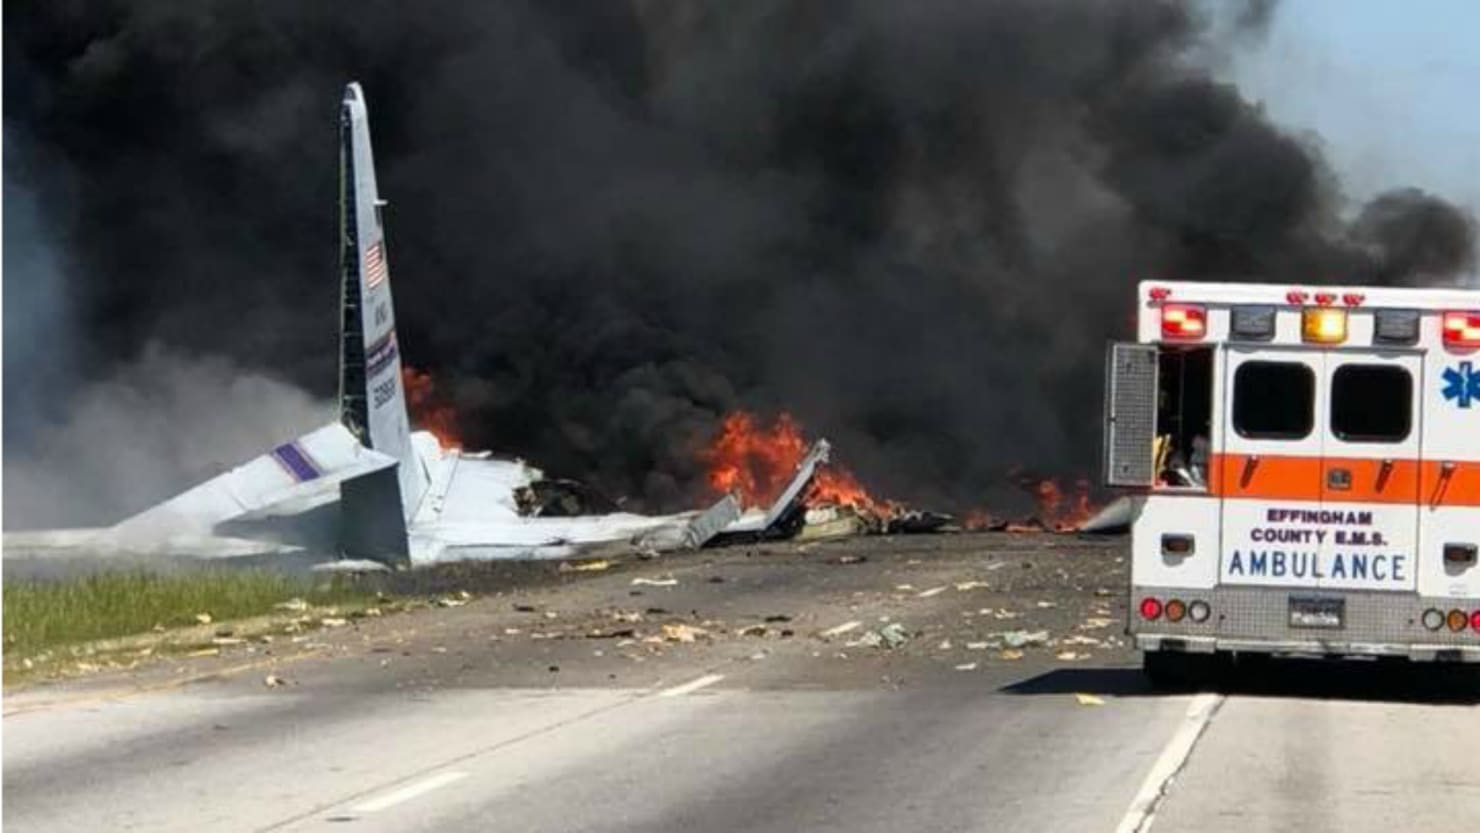 5 killed in military plane crash